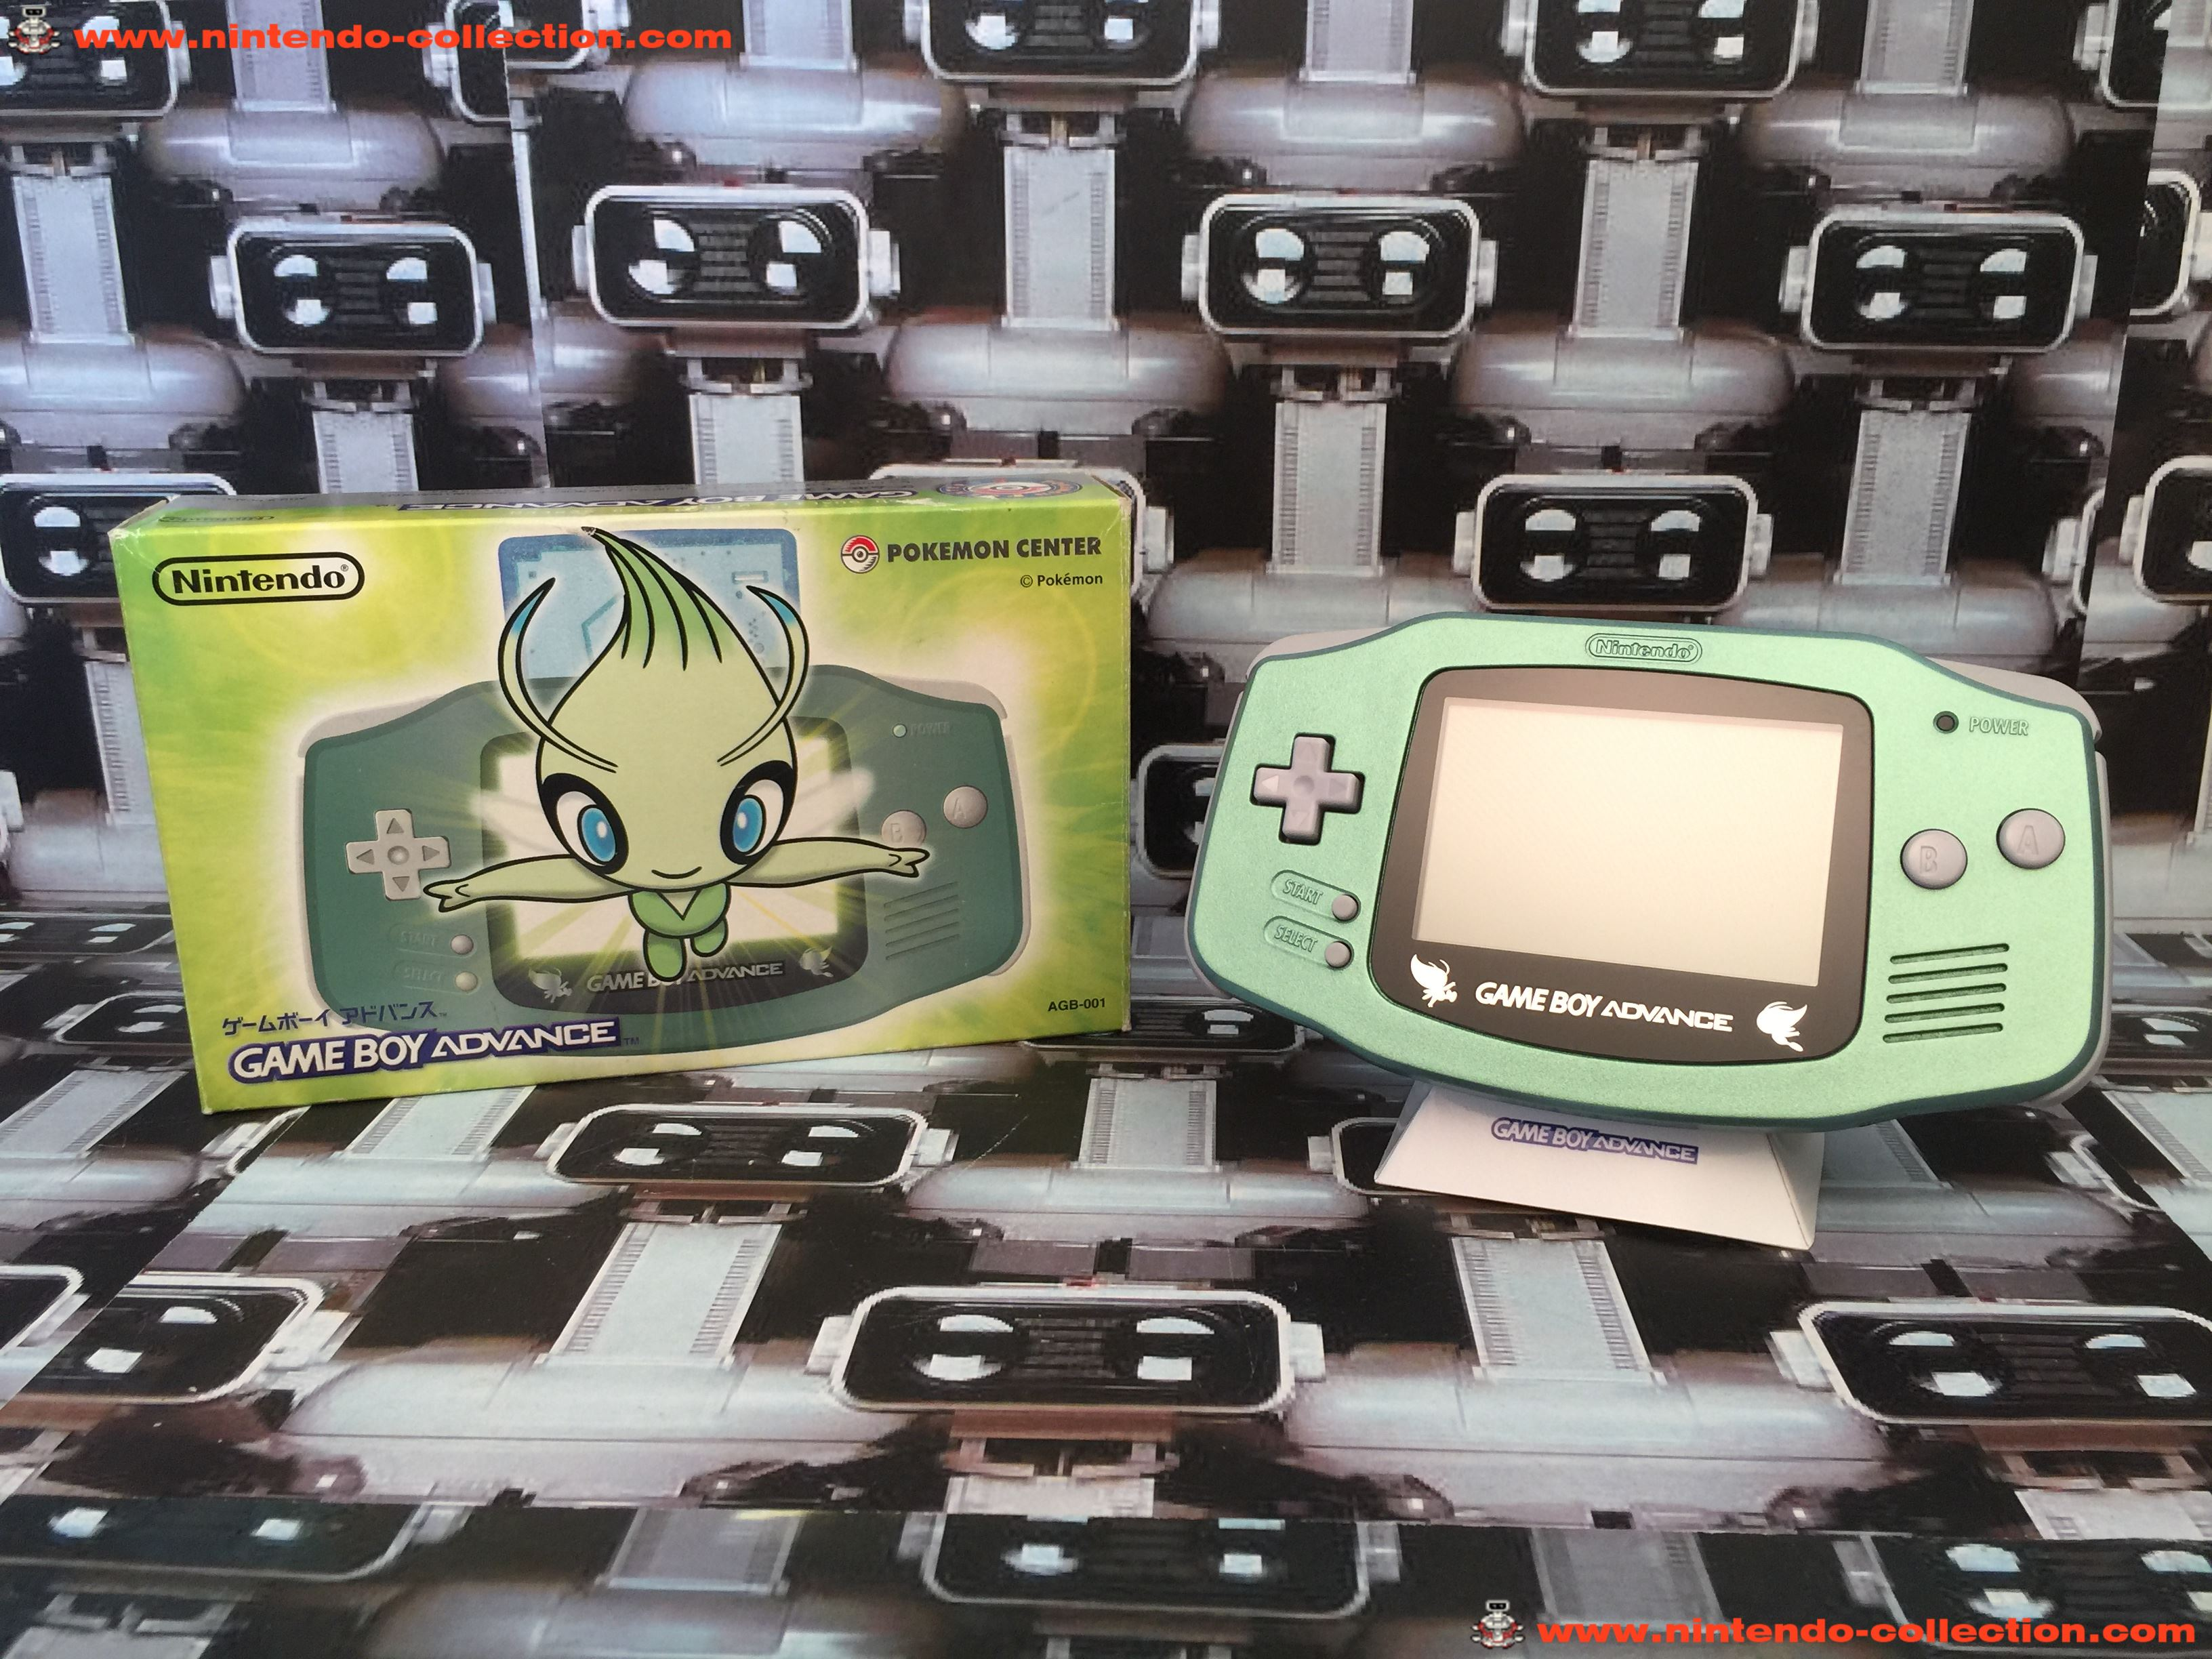 www.nintendo-collection.com - Gameboy Advance GBA Pokemon Center Celebi Serebii Limited Edition Japa